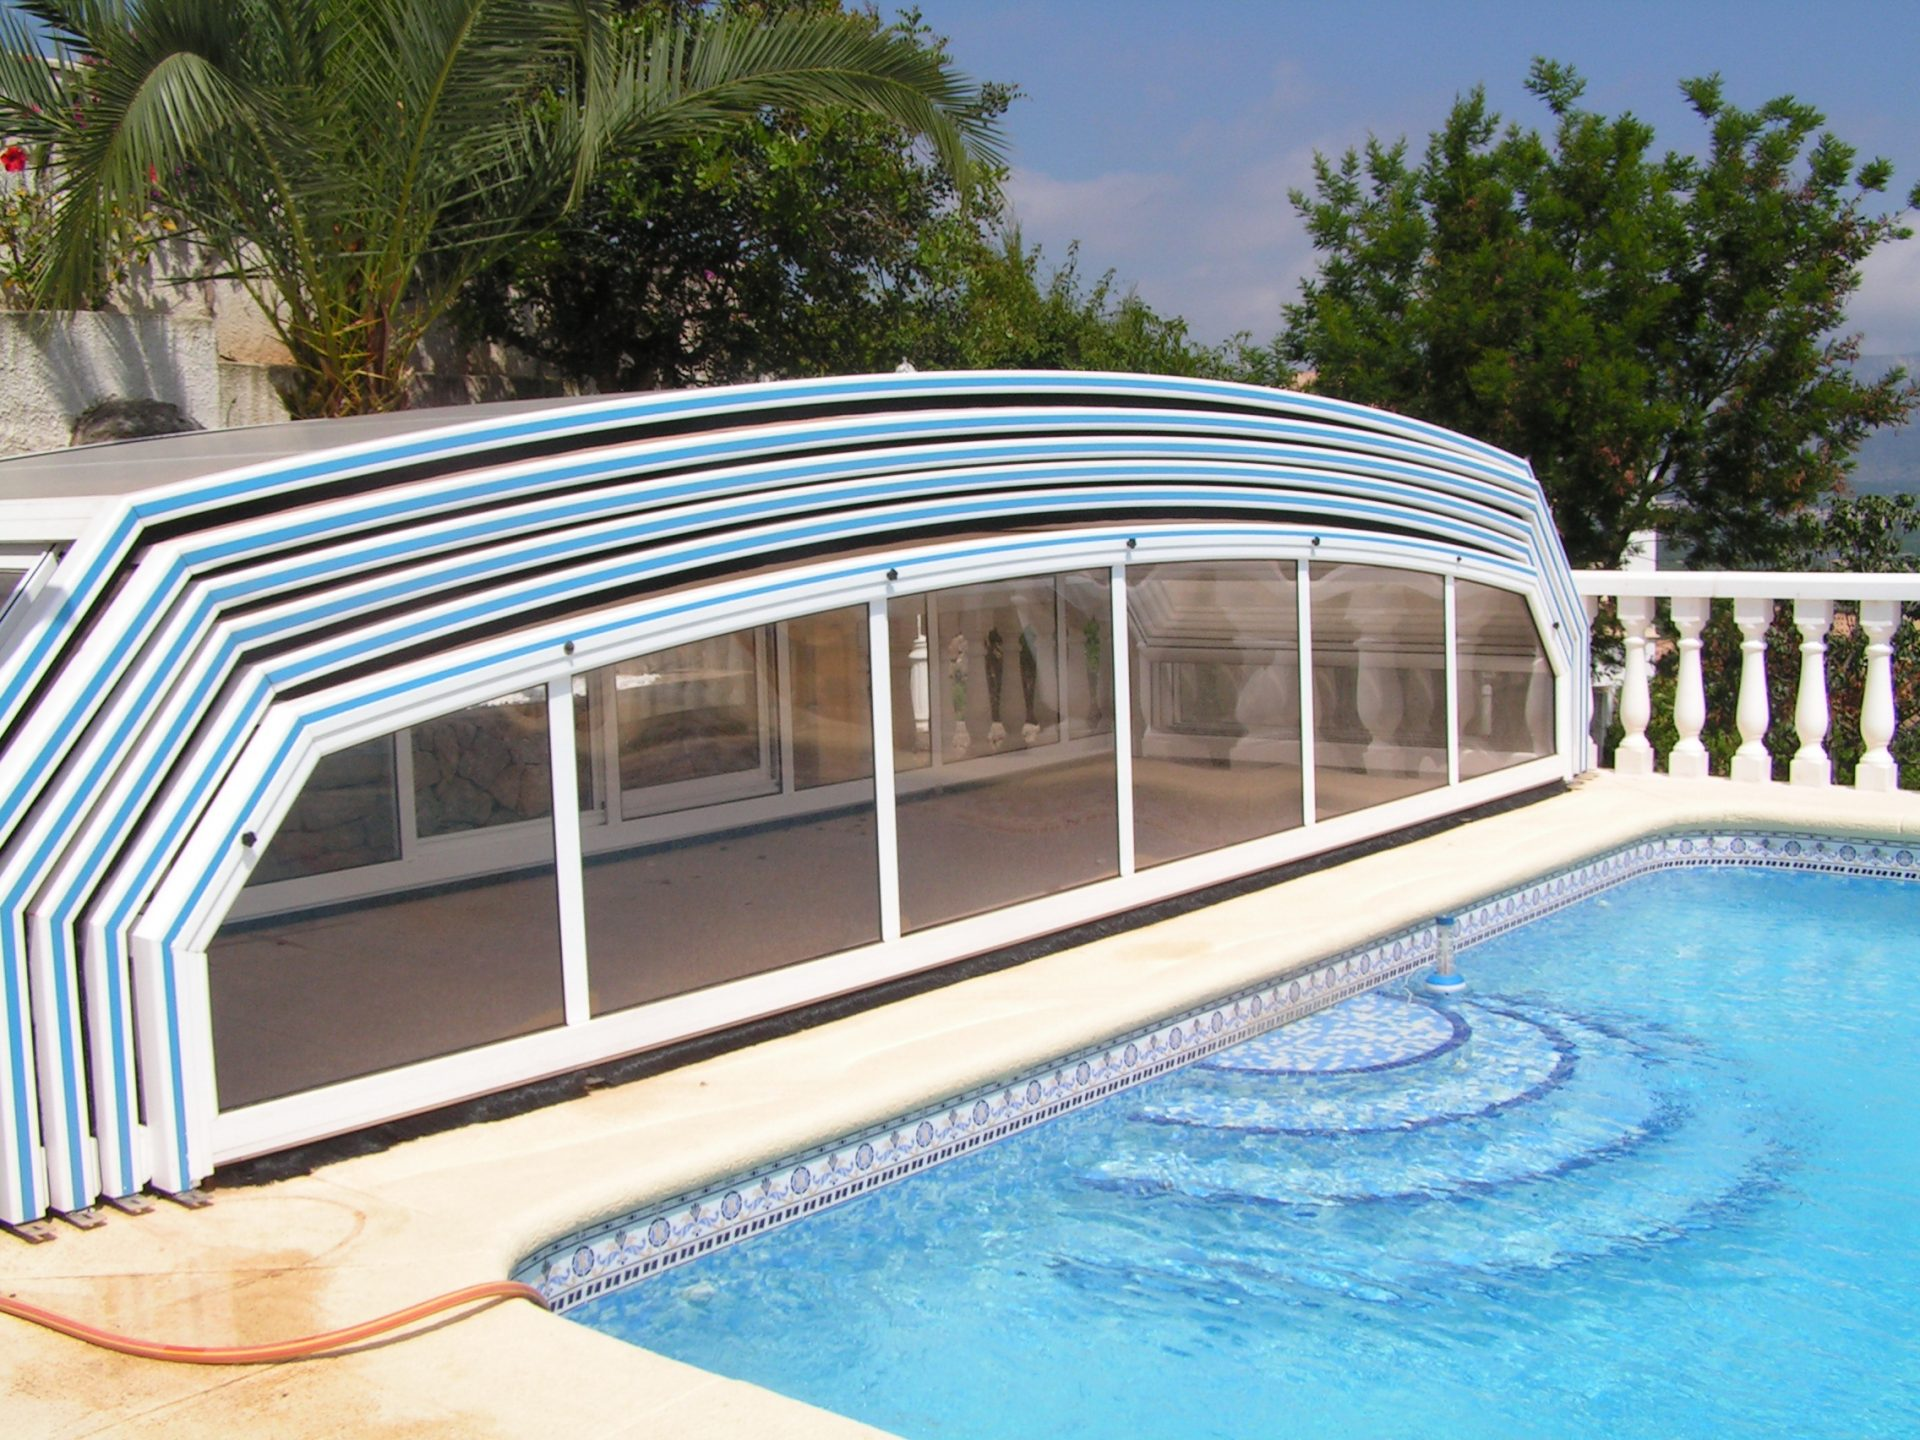 Abri piscine paris t lescopique sur roulette for Abri de piscine le mans